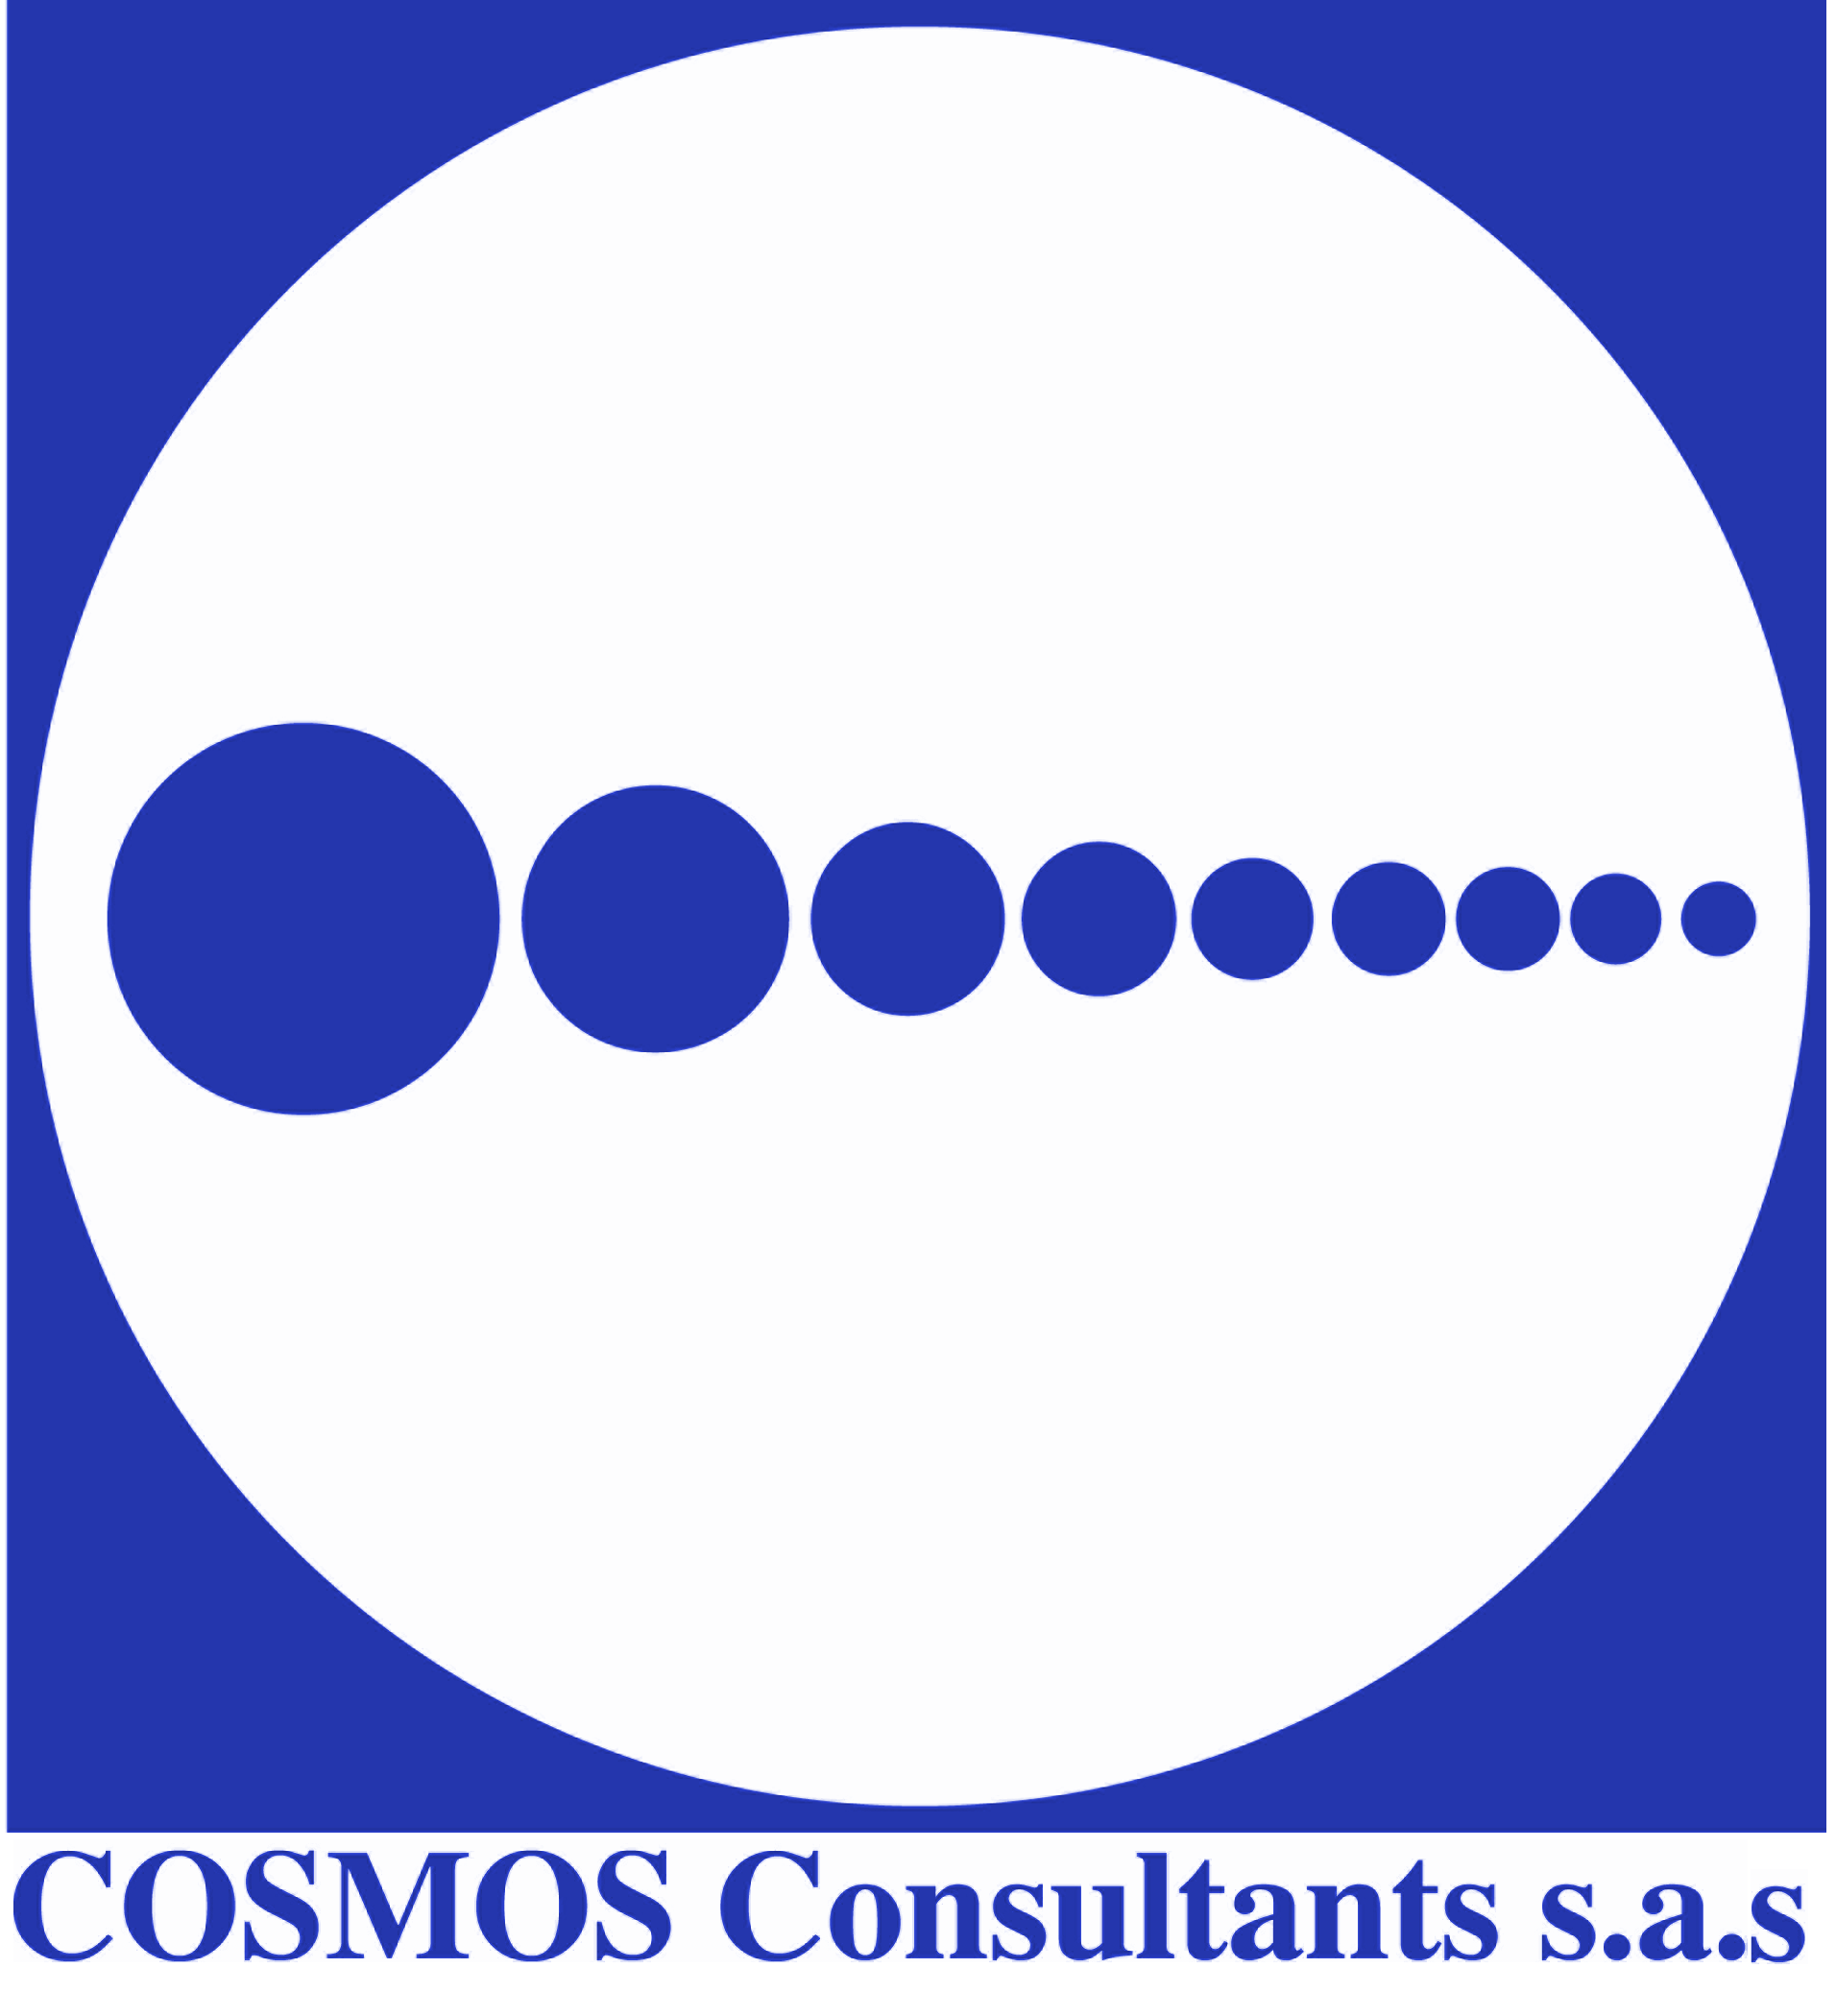 Cosmos Consultants accompagné IE Finance dans sa cession